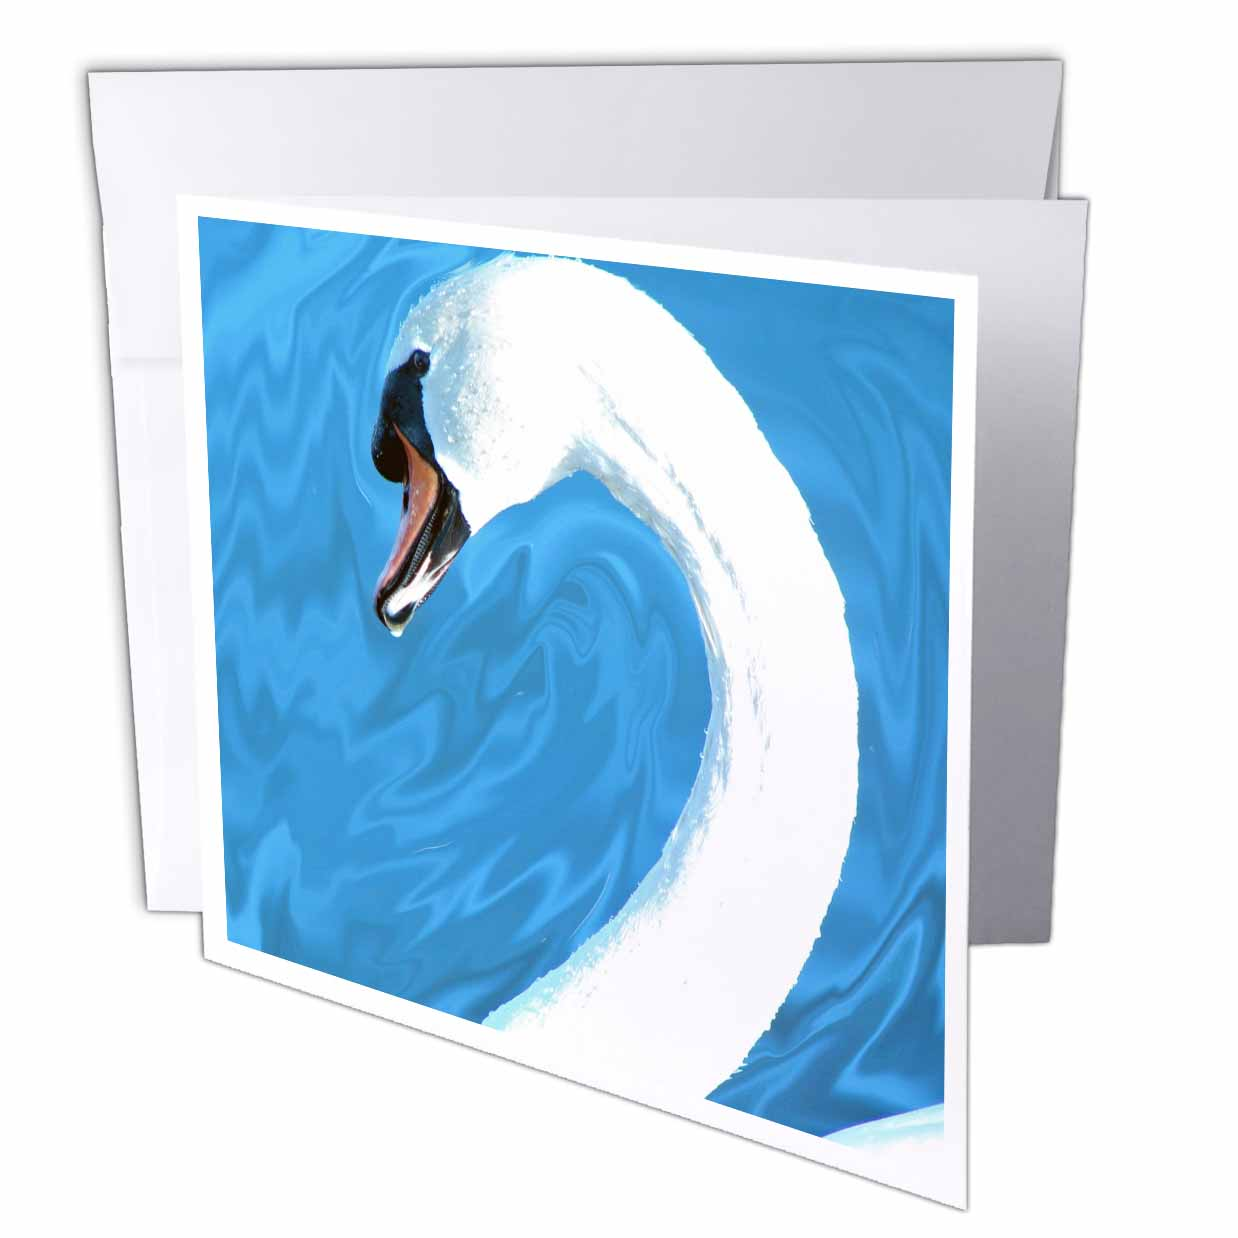 3dRose Swan by Angelandspot, Greeting Cards, 6 x 6 inches, set of 12 ...